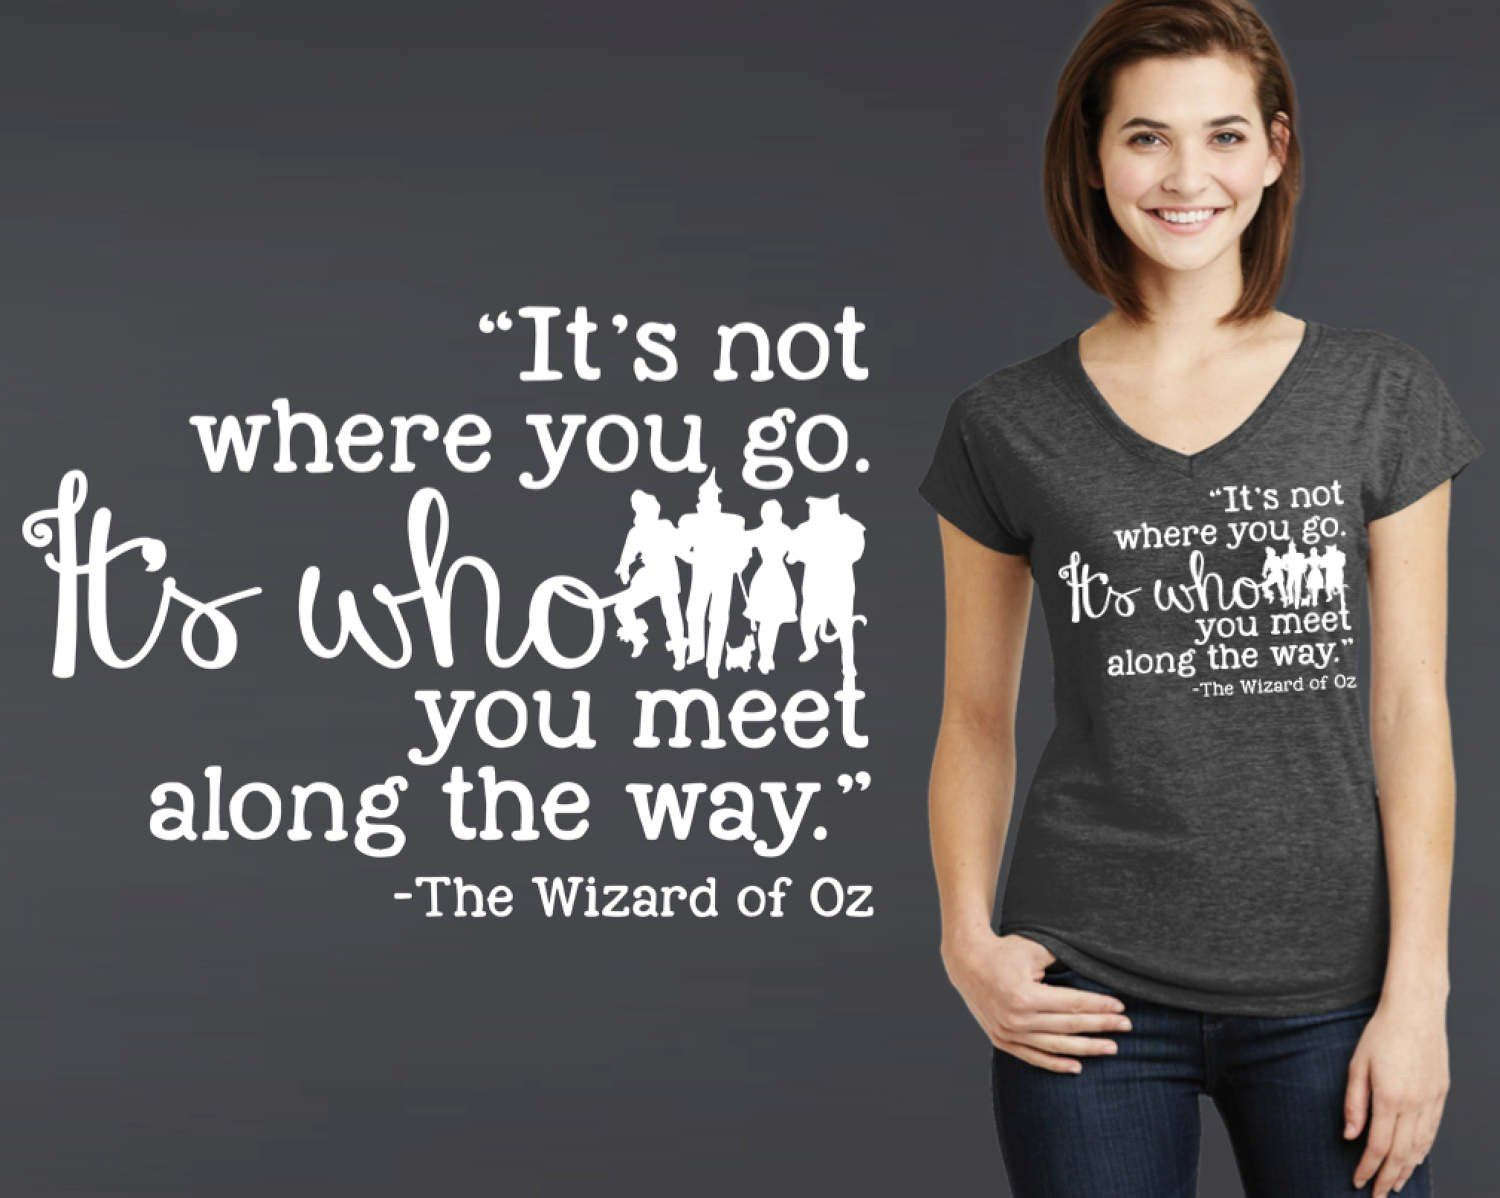 It's Who You Meet Along the Way T-shirt | Wizard of Oz